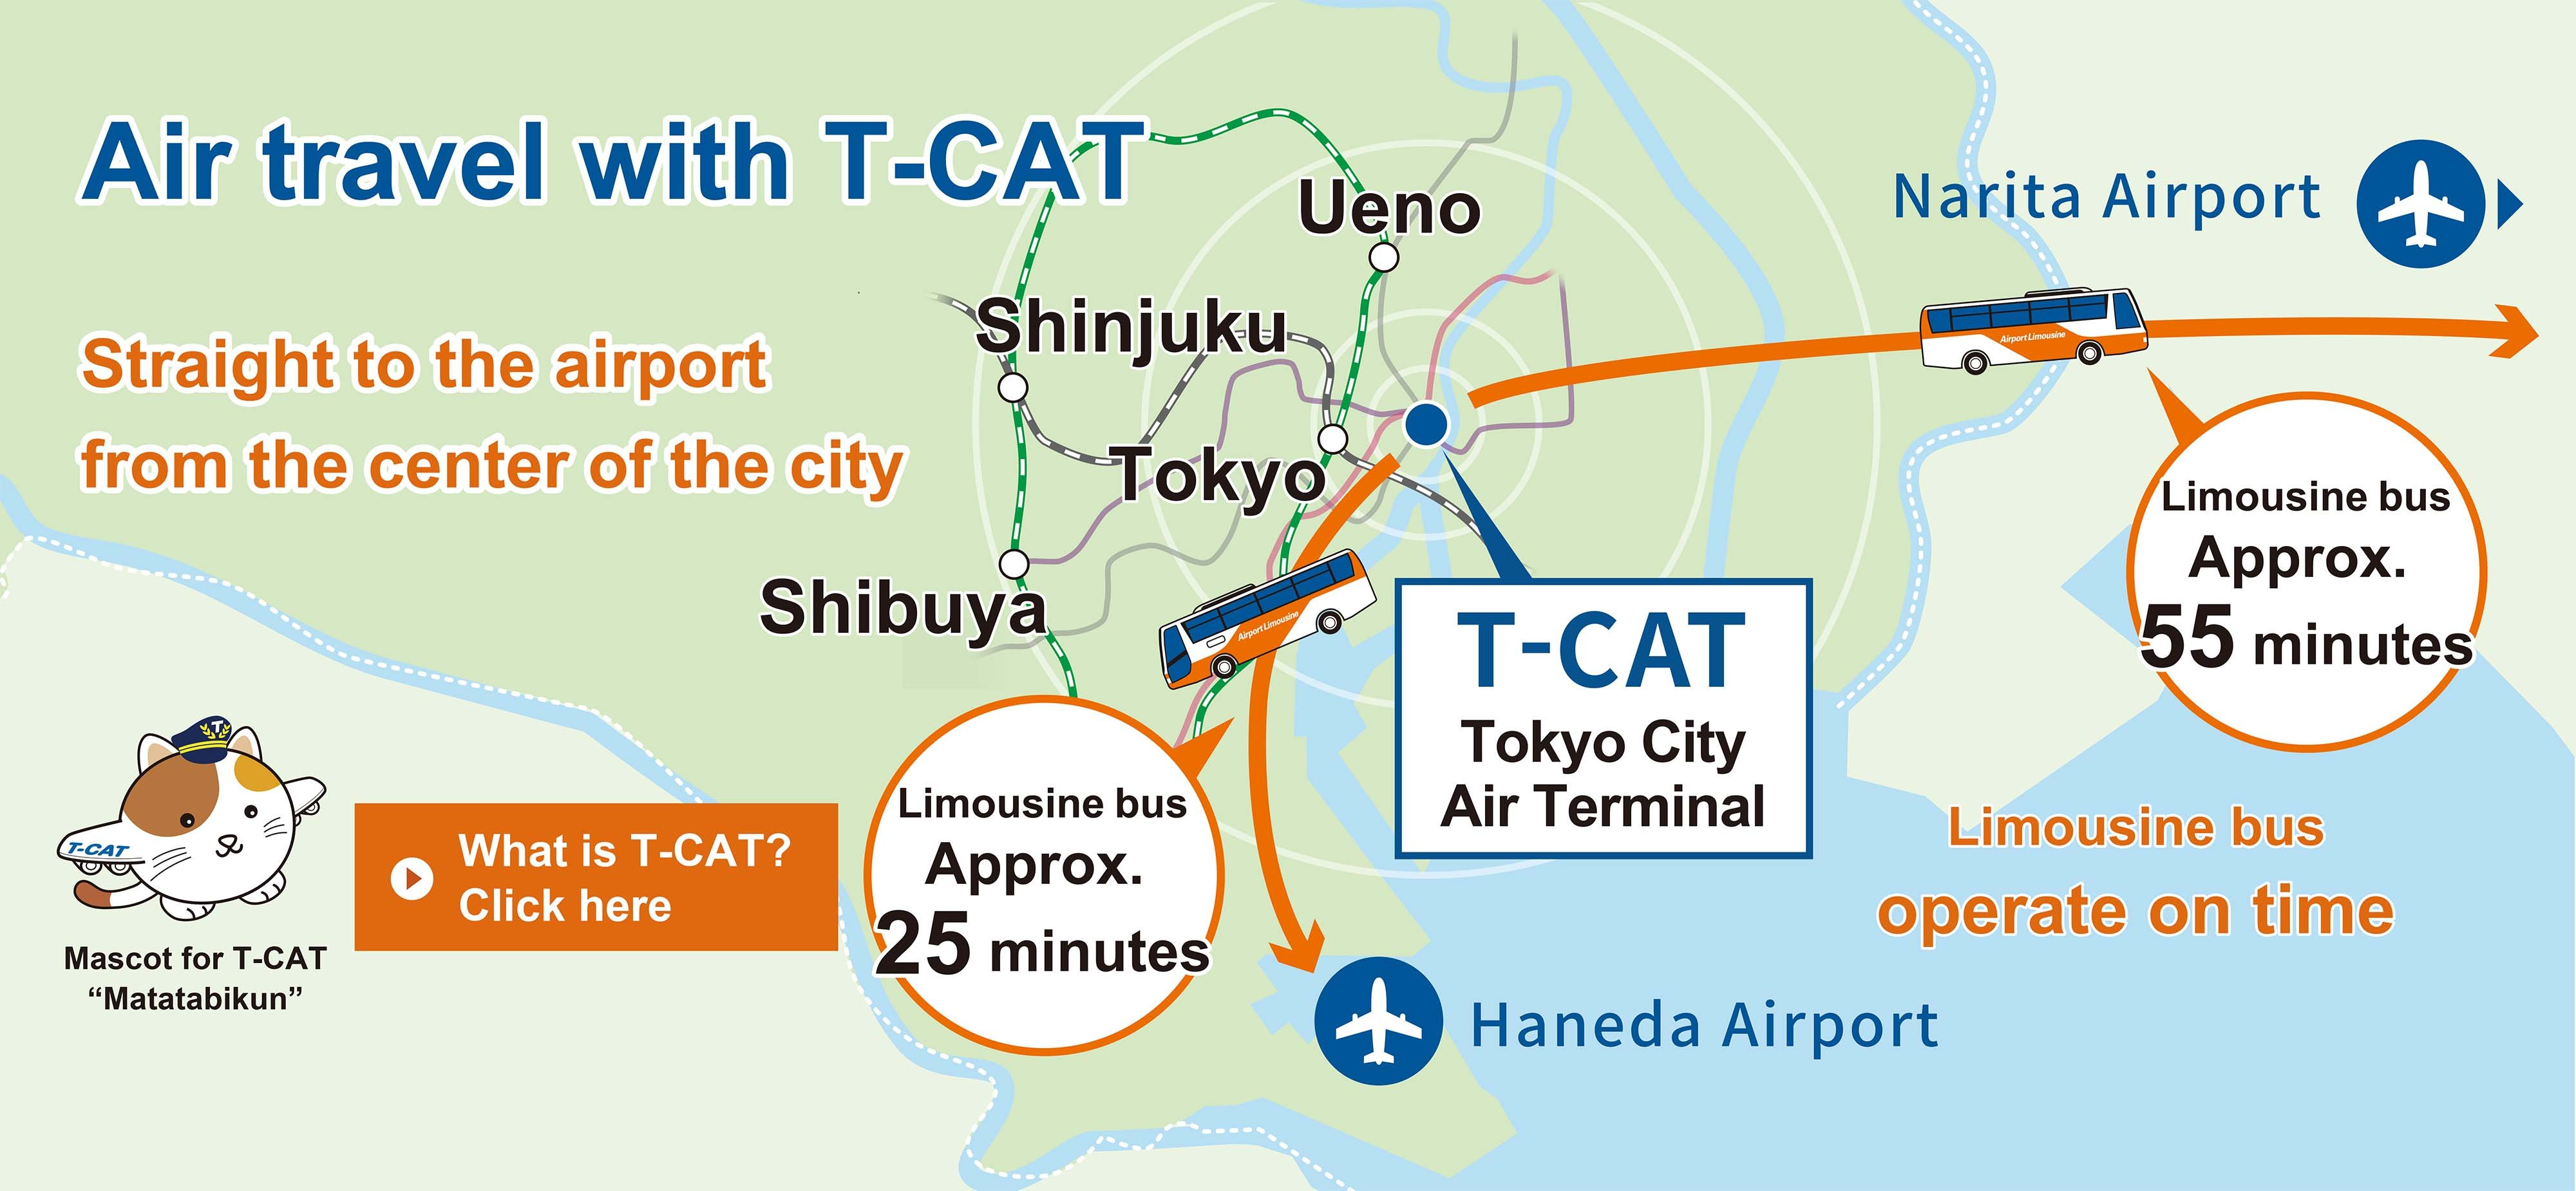 Air travel with T-CAT